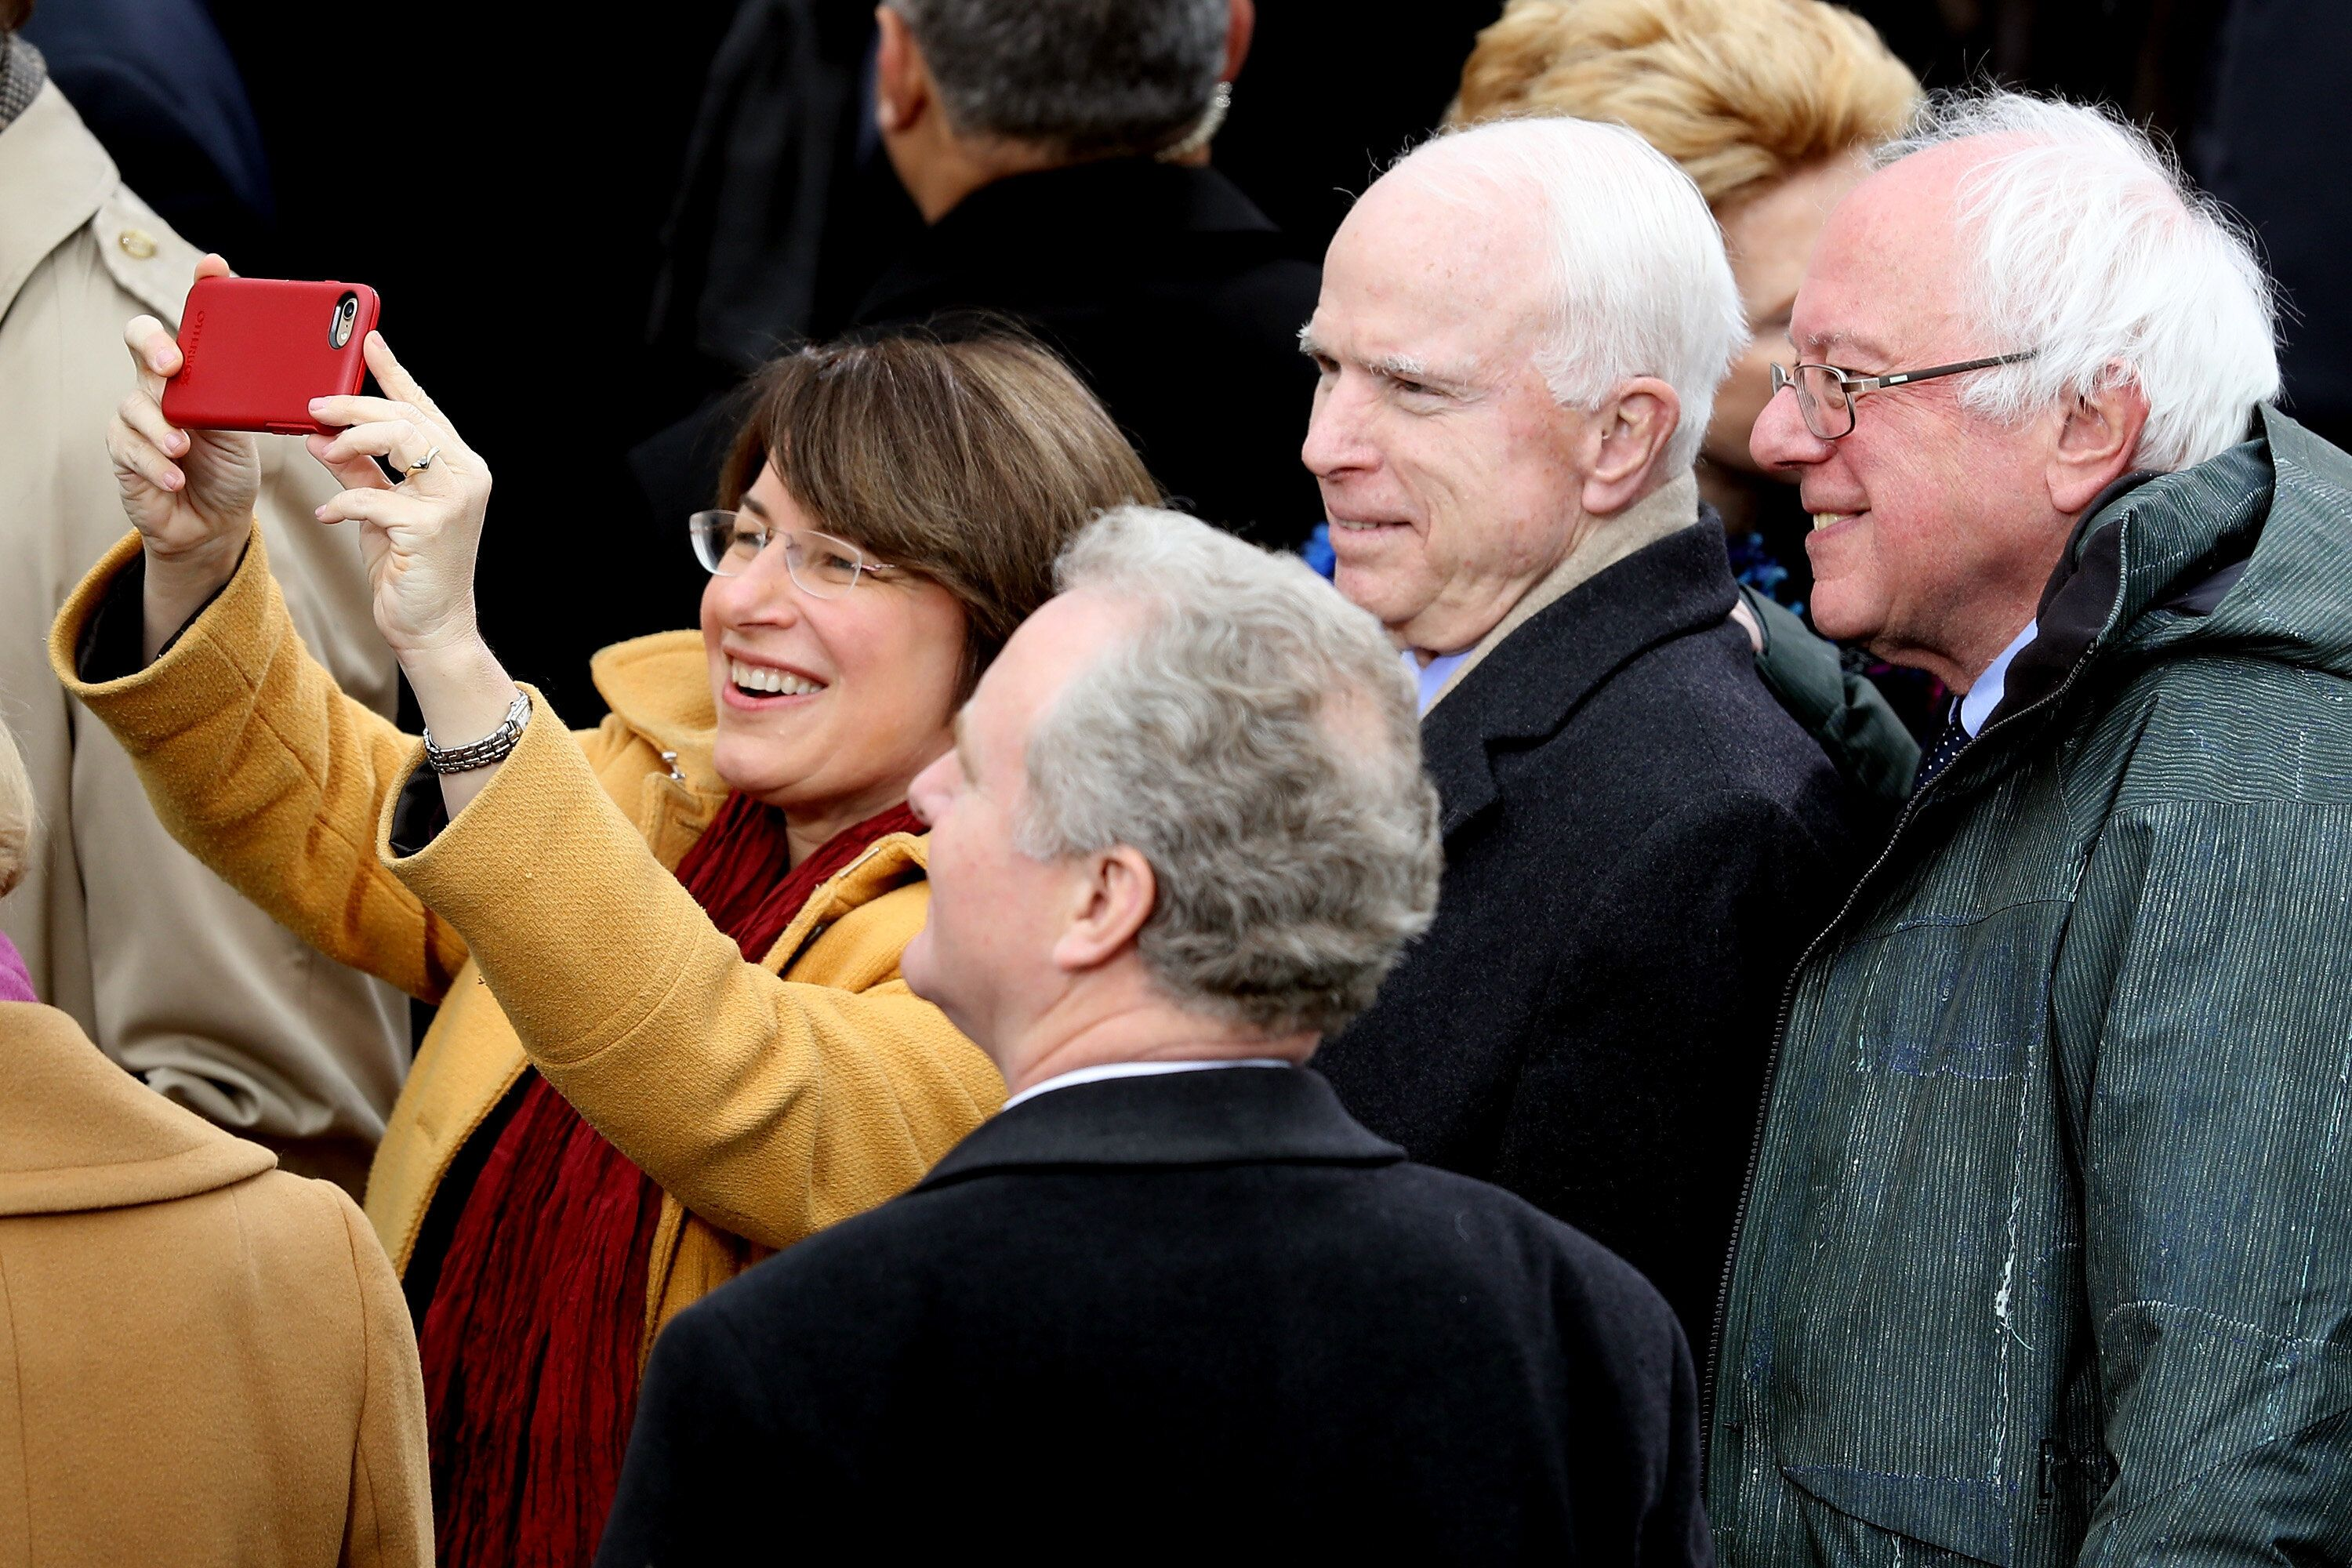 WASHINGTON, DC - JANUARY 20: (L-R) Sen. Amy Klobuchar (D-MN) (L) takes a selfie with Sen. Chris Van Hollen (D-MD), Sen. John McCain (R-AZ) and Sen. Bernie Sanders (D-VT) (R) on the West Front of the U.S. Capitol on January 20, 2017 in Washington, DC. In today's inauguration ceremony Donald J. Trump becomes the 45th president of the United States.  (Photo by Joe Raedle/Getty Images)